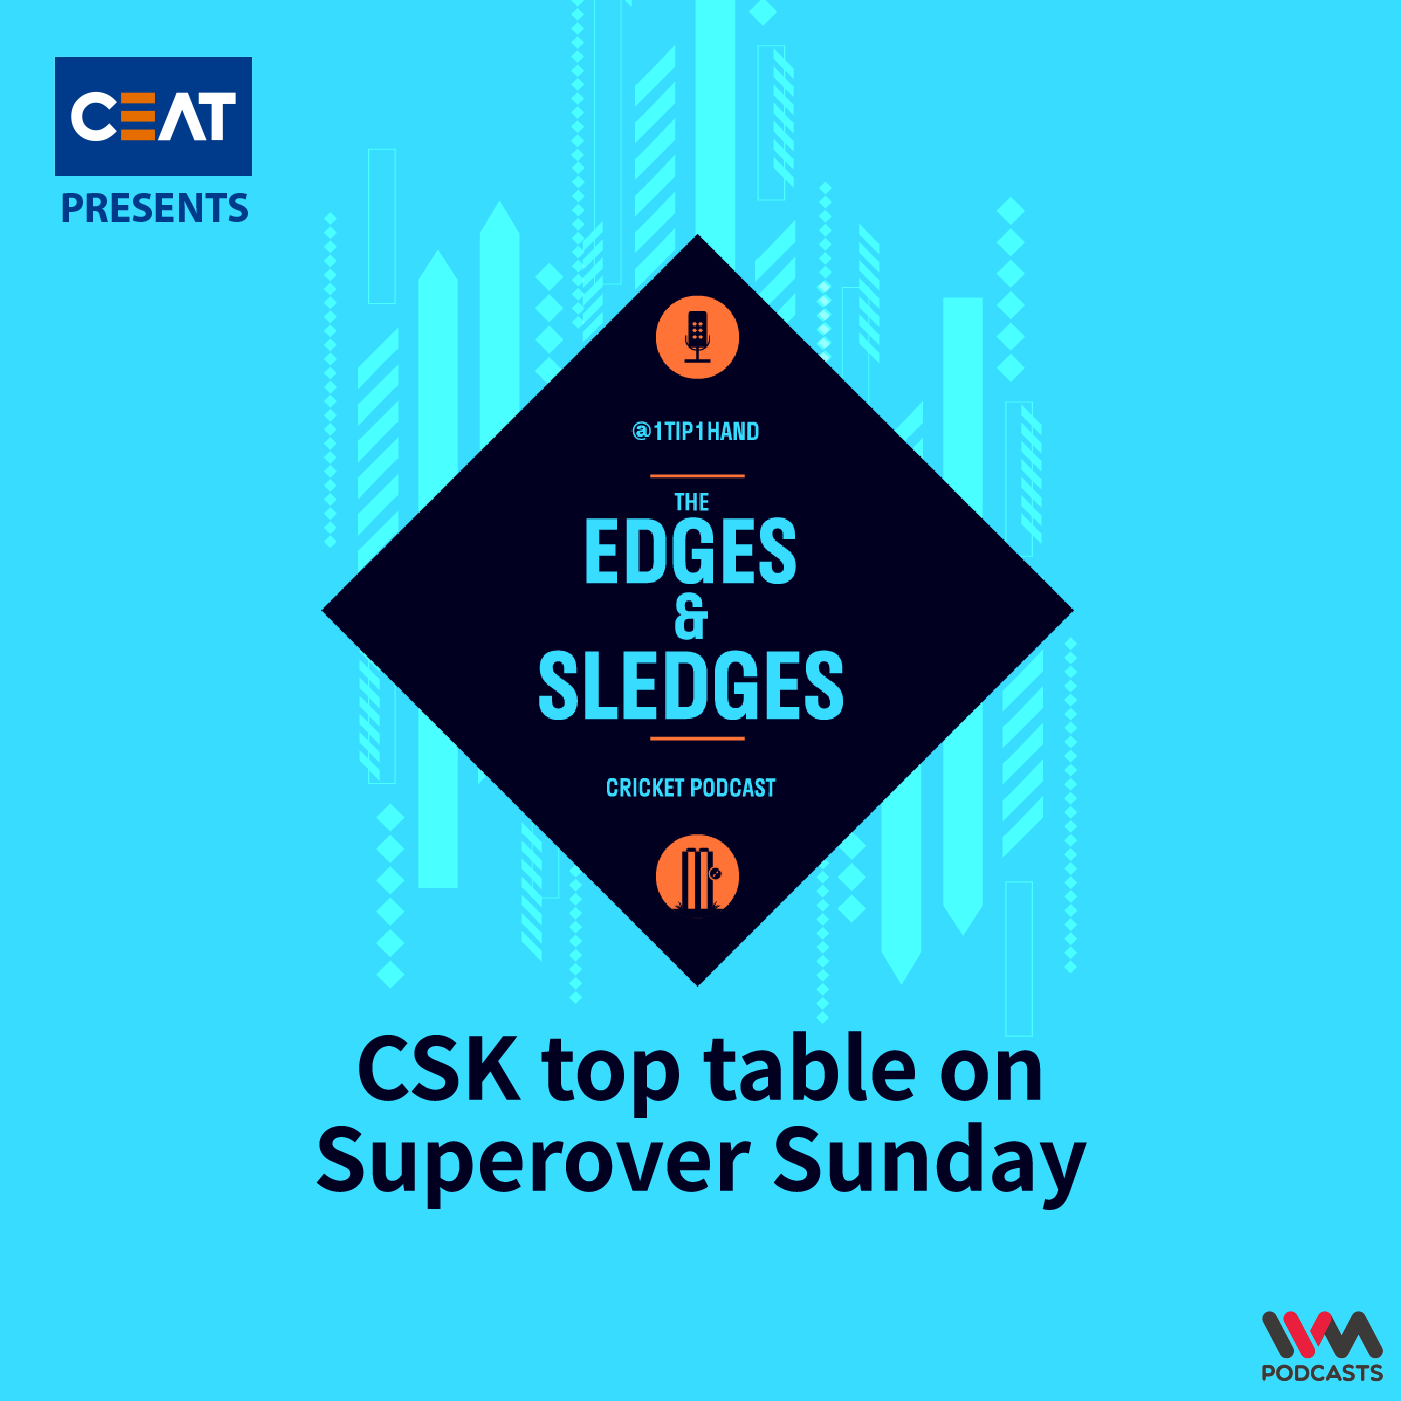 Ep. 170: CSK top table on Superover Sunday